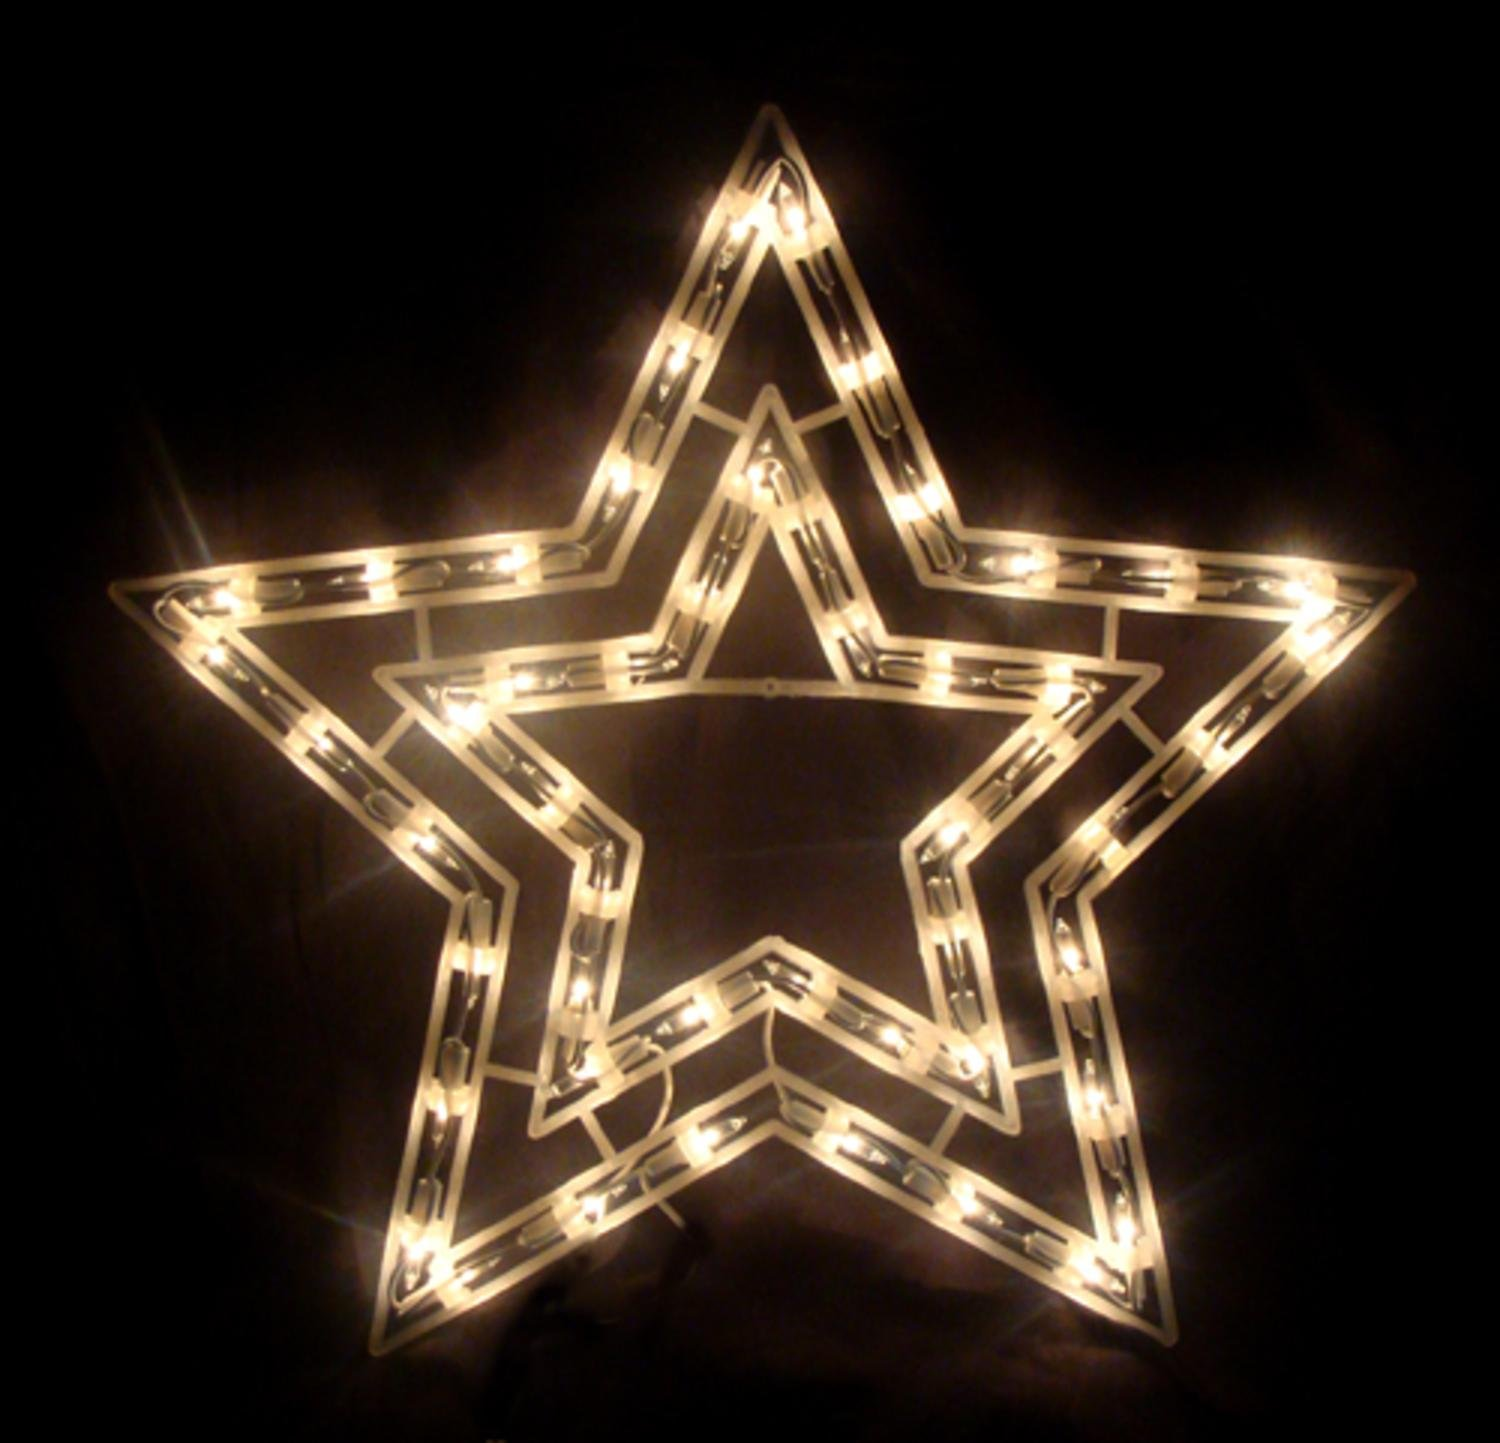 Amazon sienna 17 clear lighted star christmas window amazon sienna 17 clear lighted star christmas window silhouette decoration home kitchen aloadofball Gallery